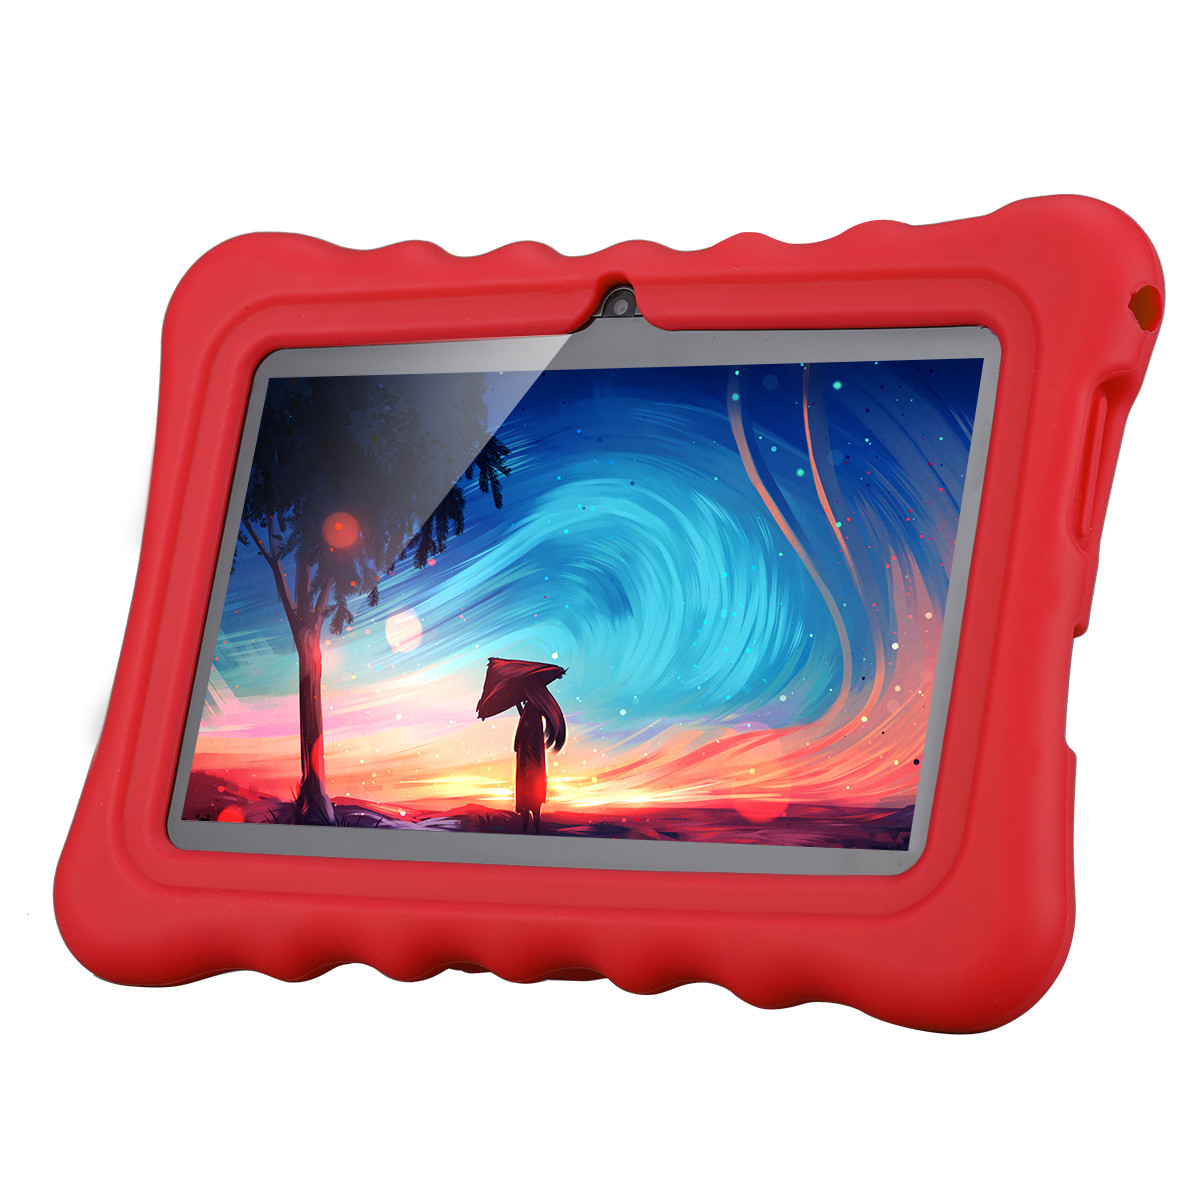 "Ainol Q88 7"" Kids Tablet PC, Android 4.4 External 3G RAM 8GB ROM 512MB Tablet with Dual Camera Wifi USB Phablet, Red"